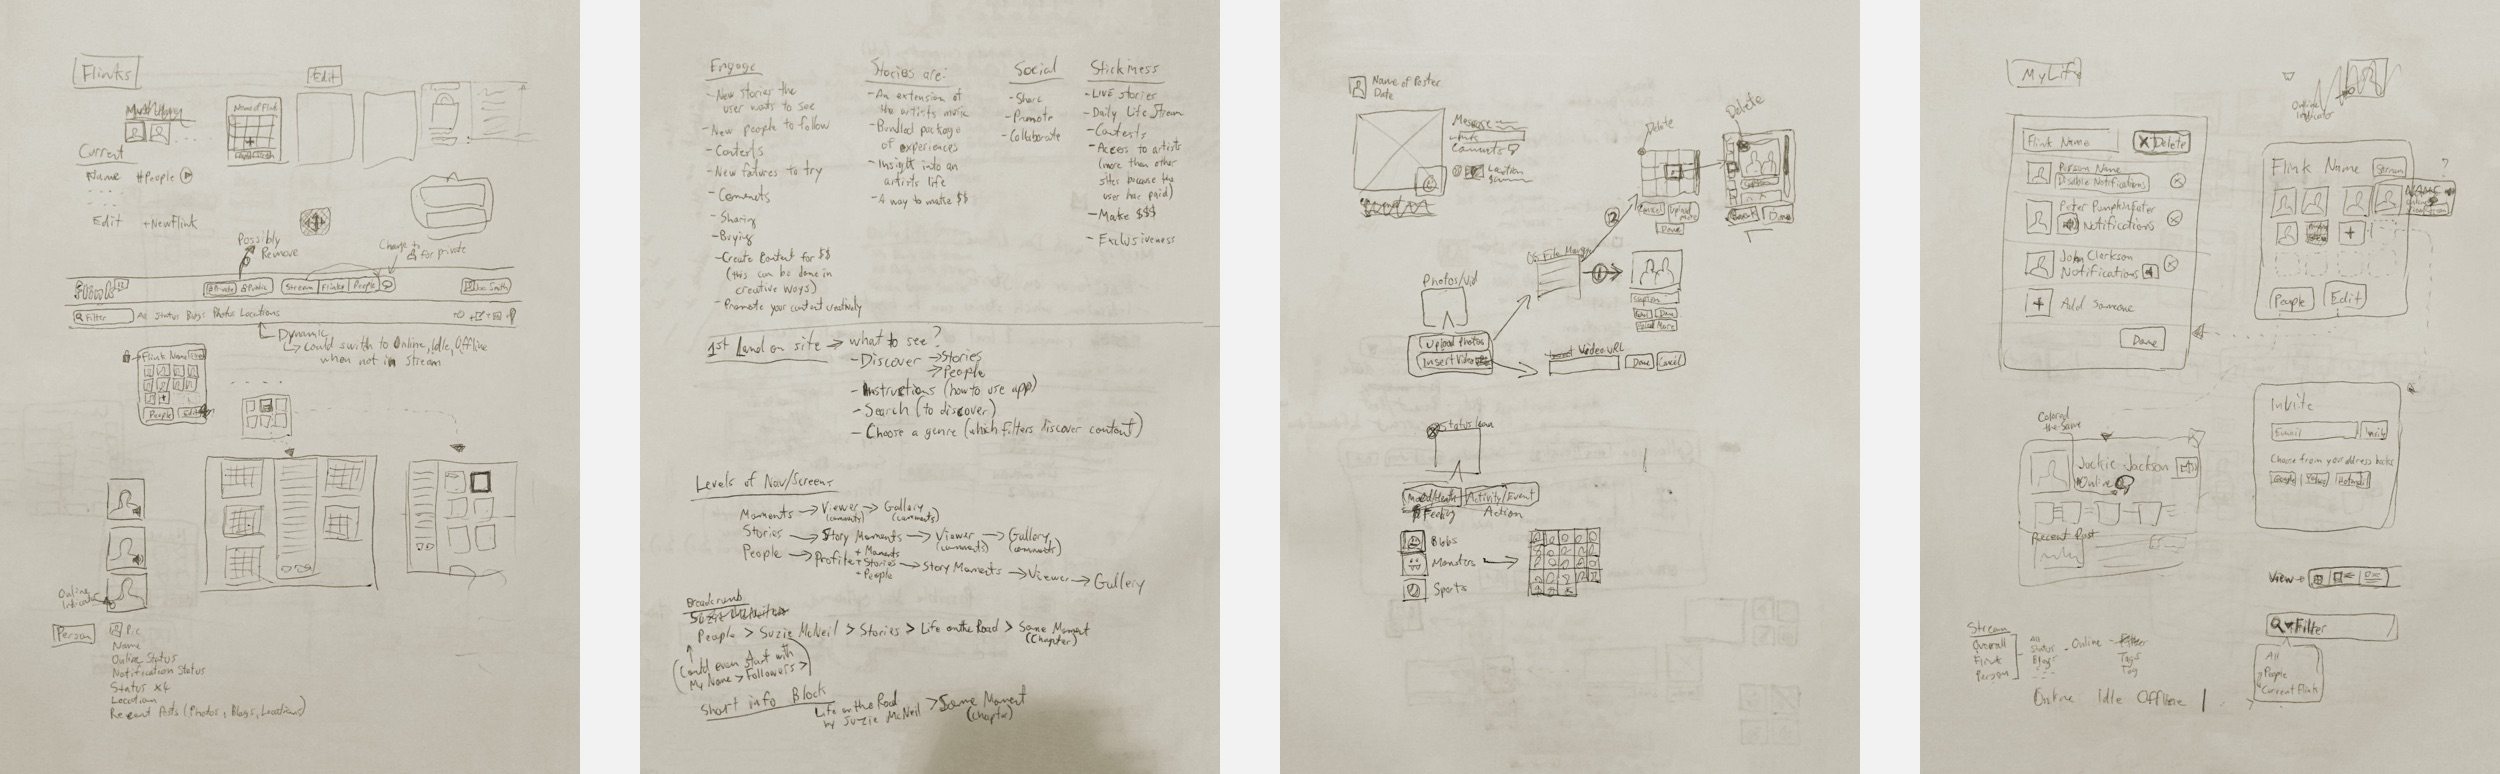 Just a handful of the numerous pages of sketches, notes, ideas, and questions.